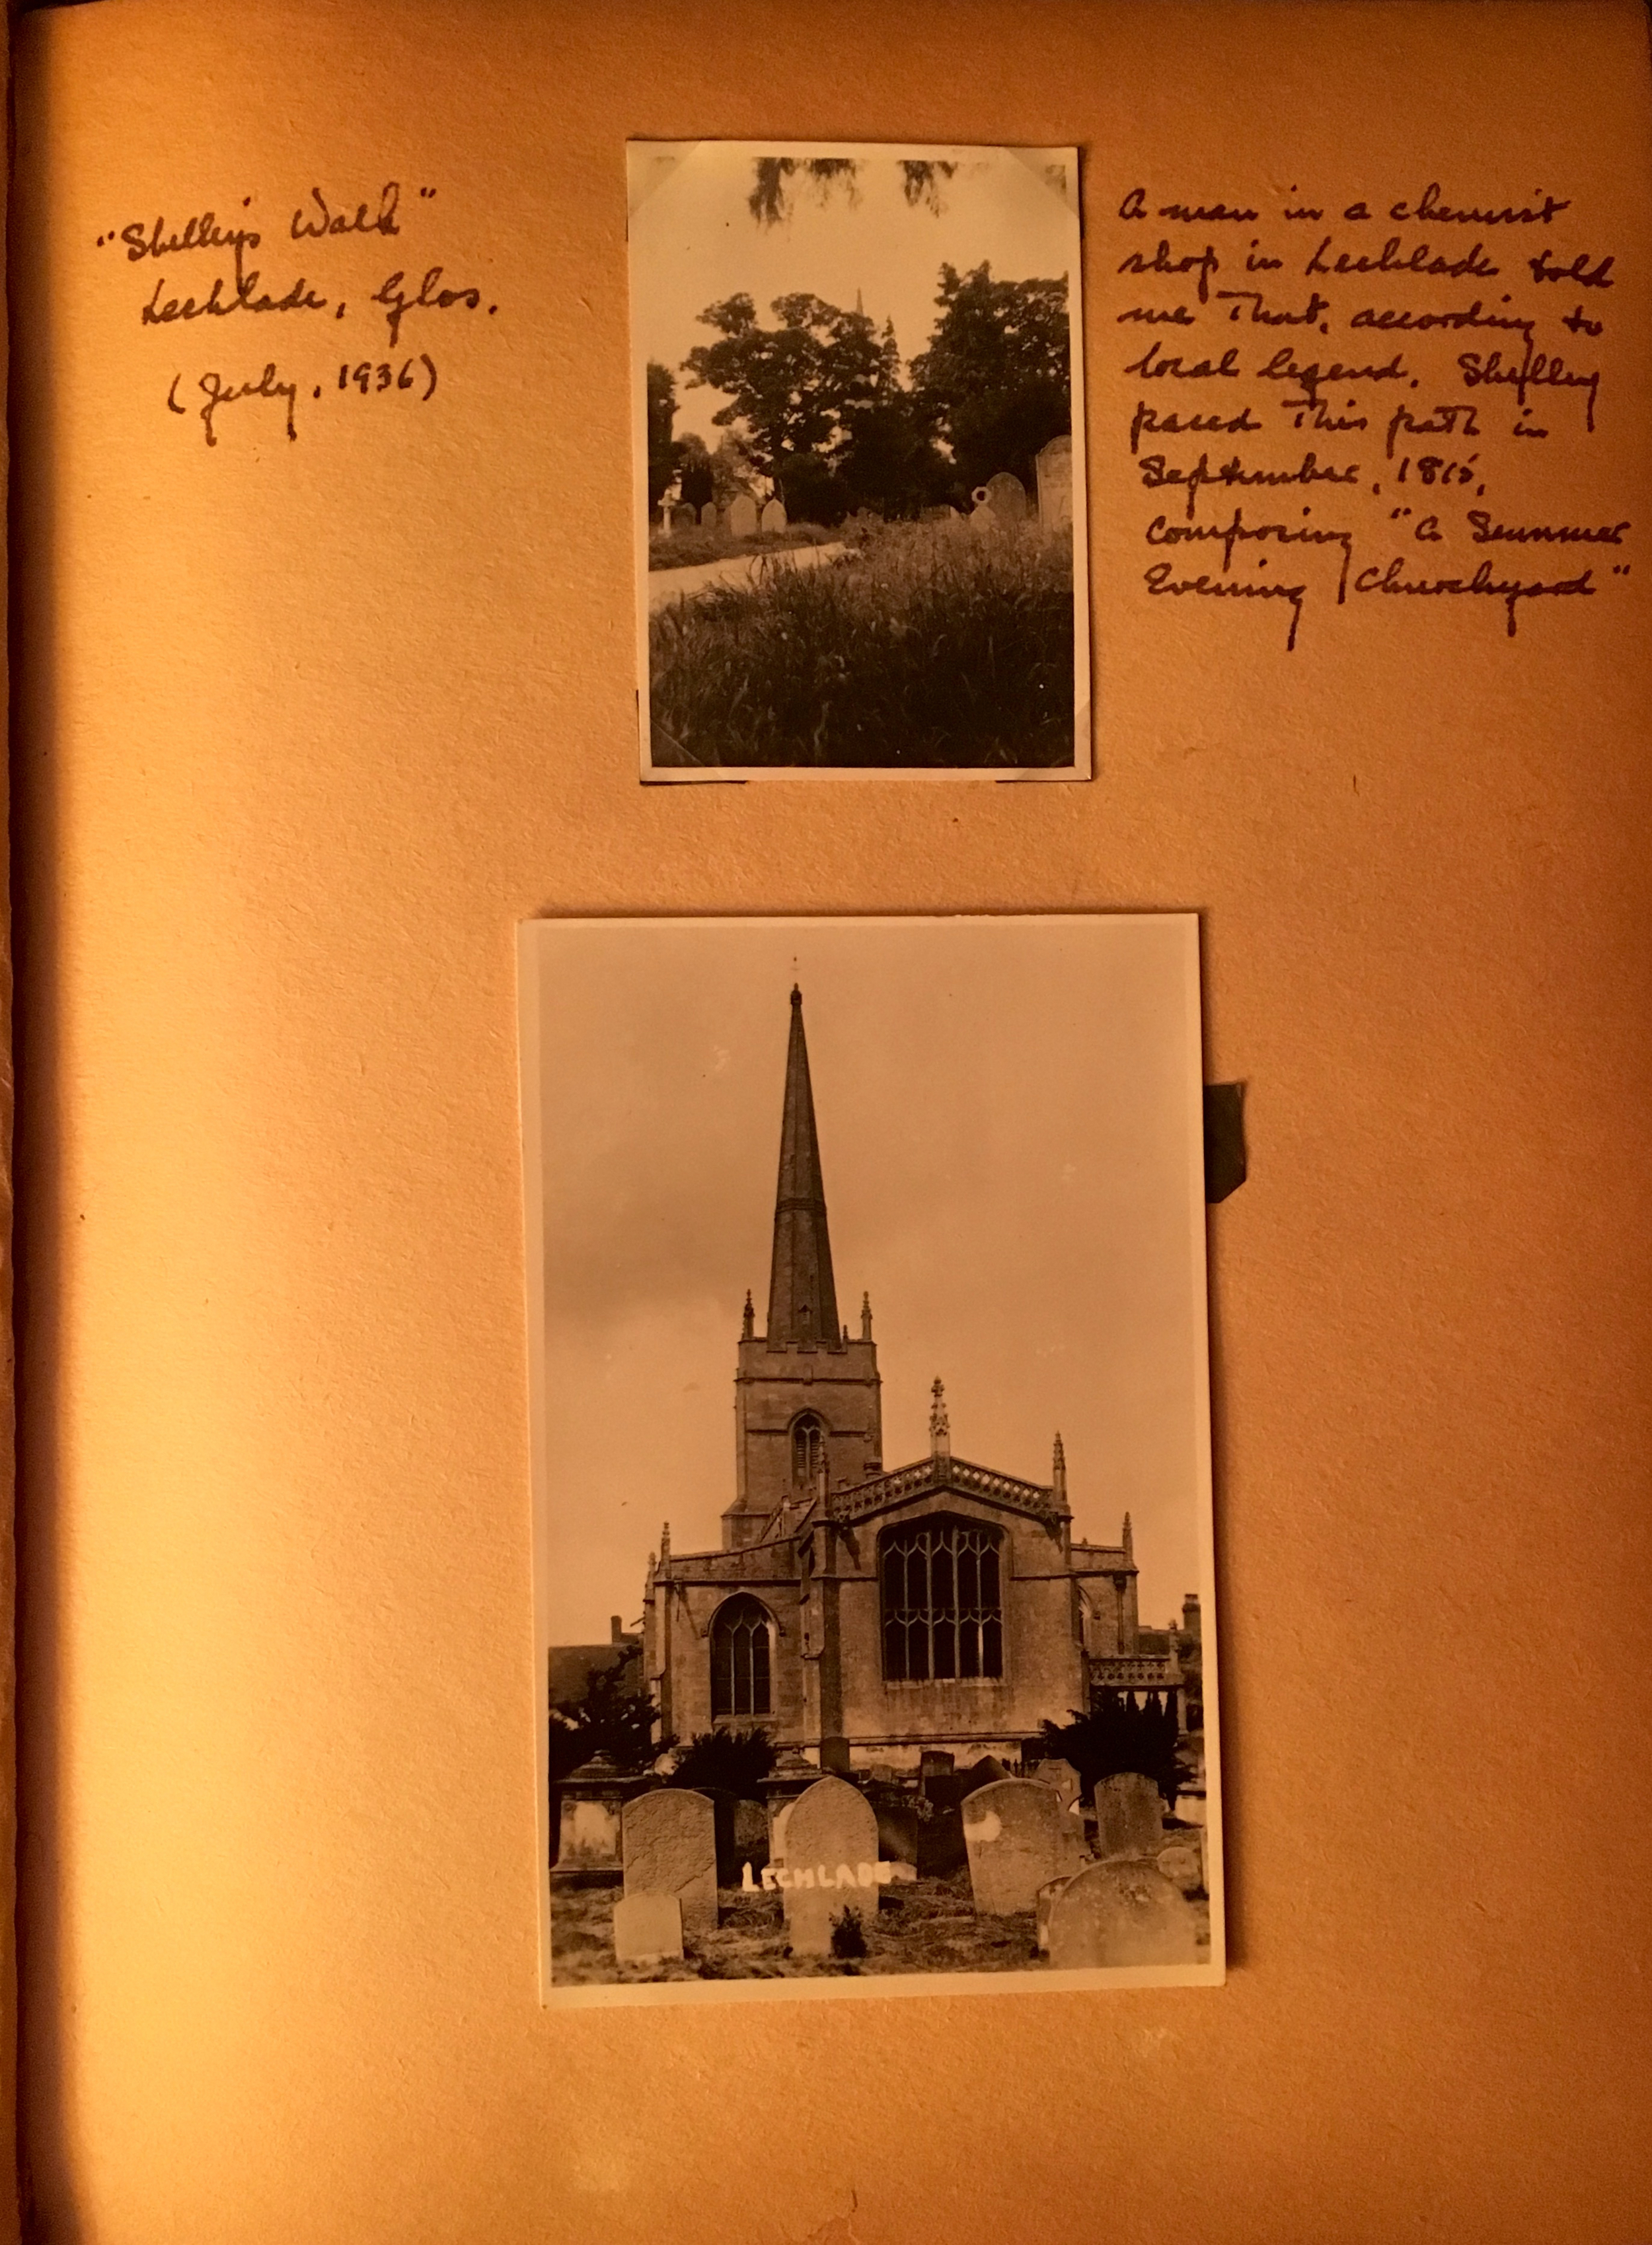 Lechlade, Gloucestershire, 1936